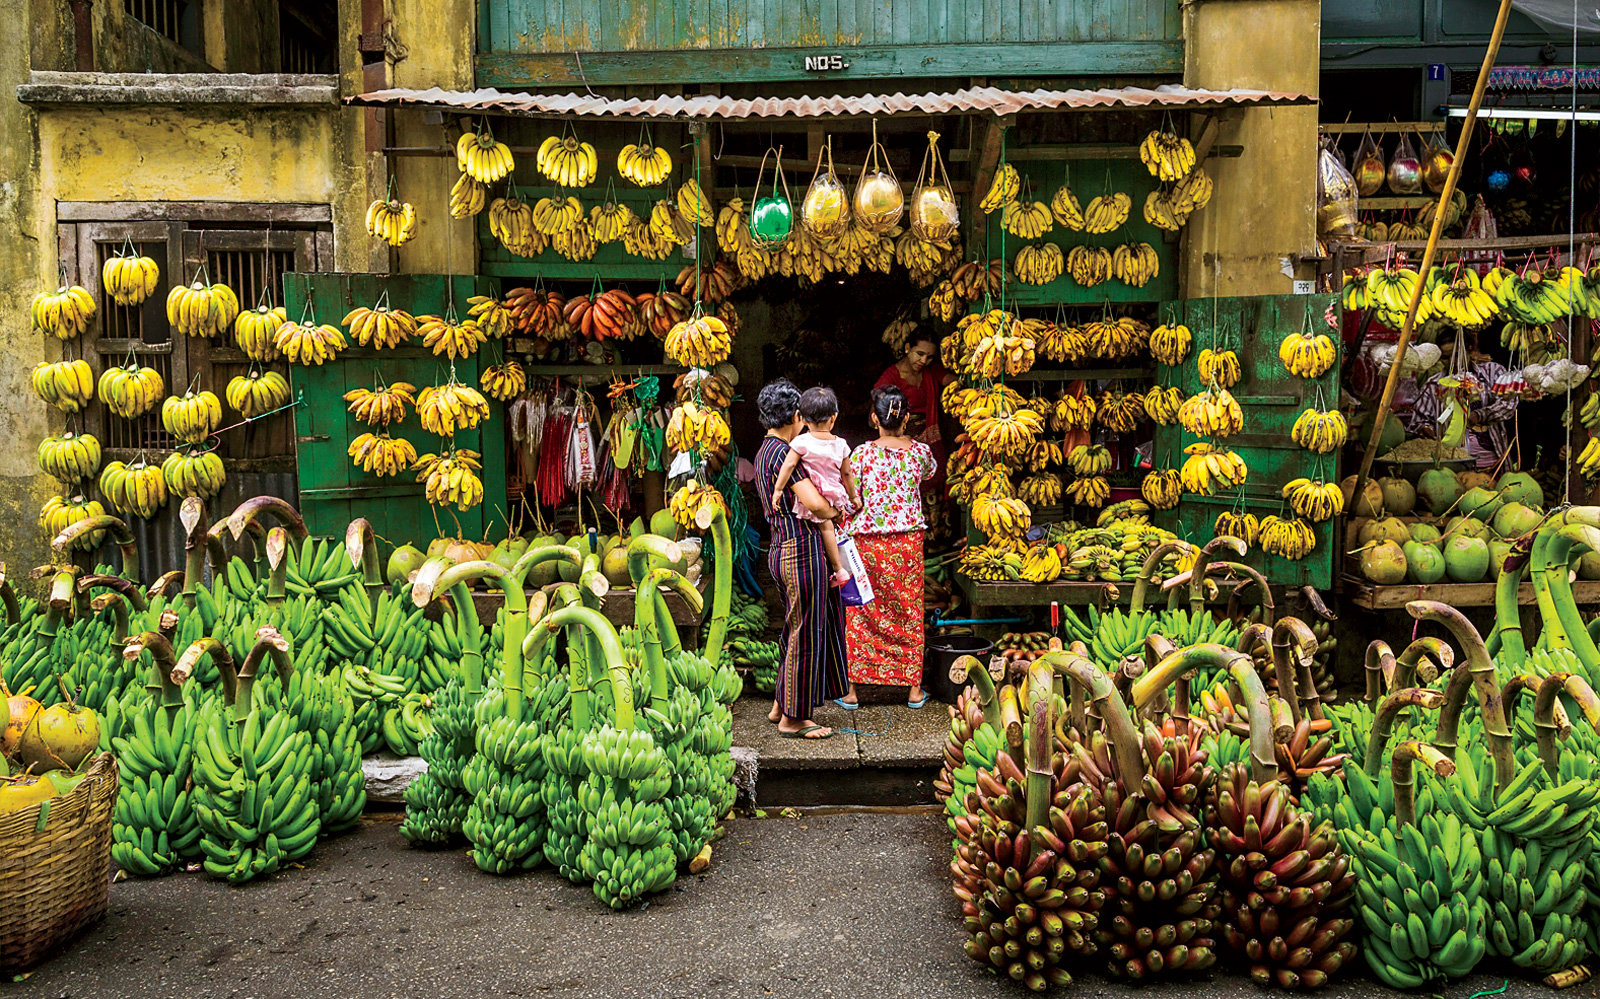 Fruit Stands in Burma